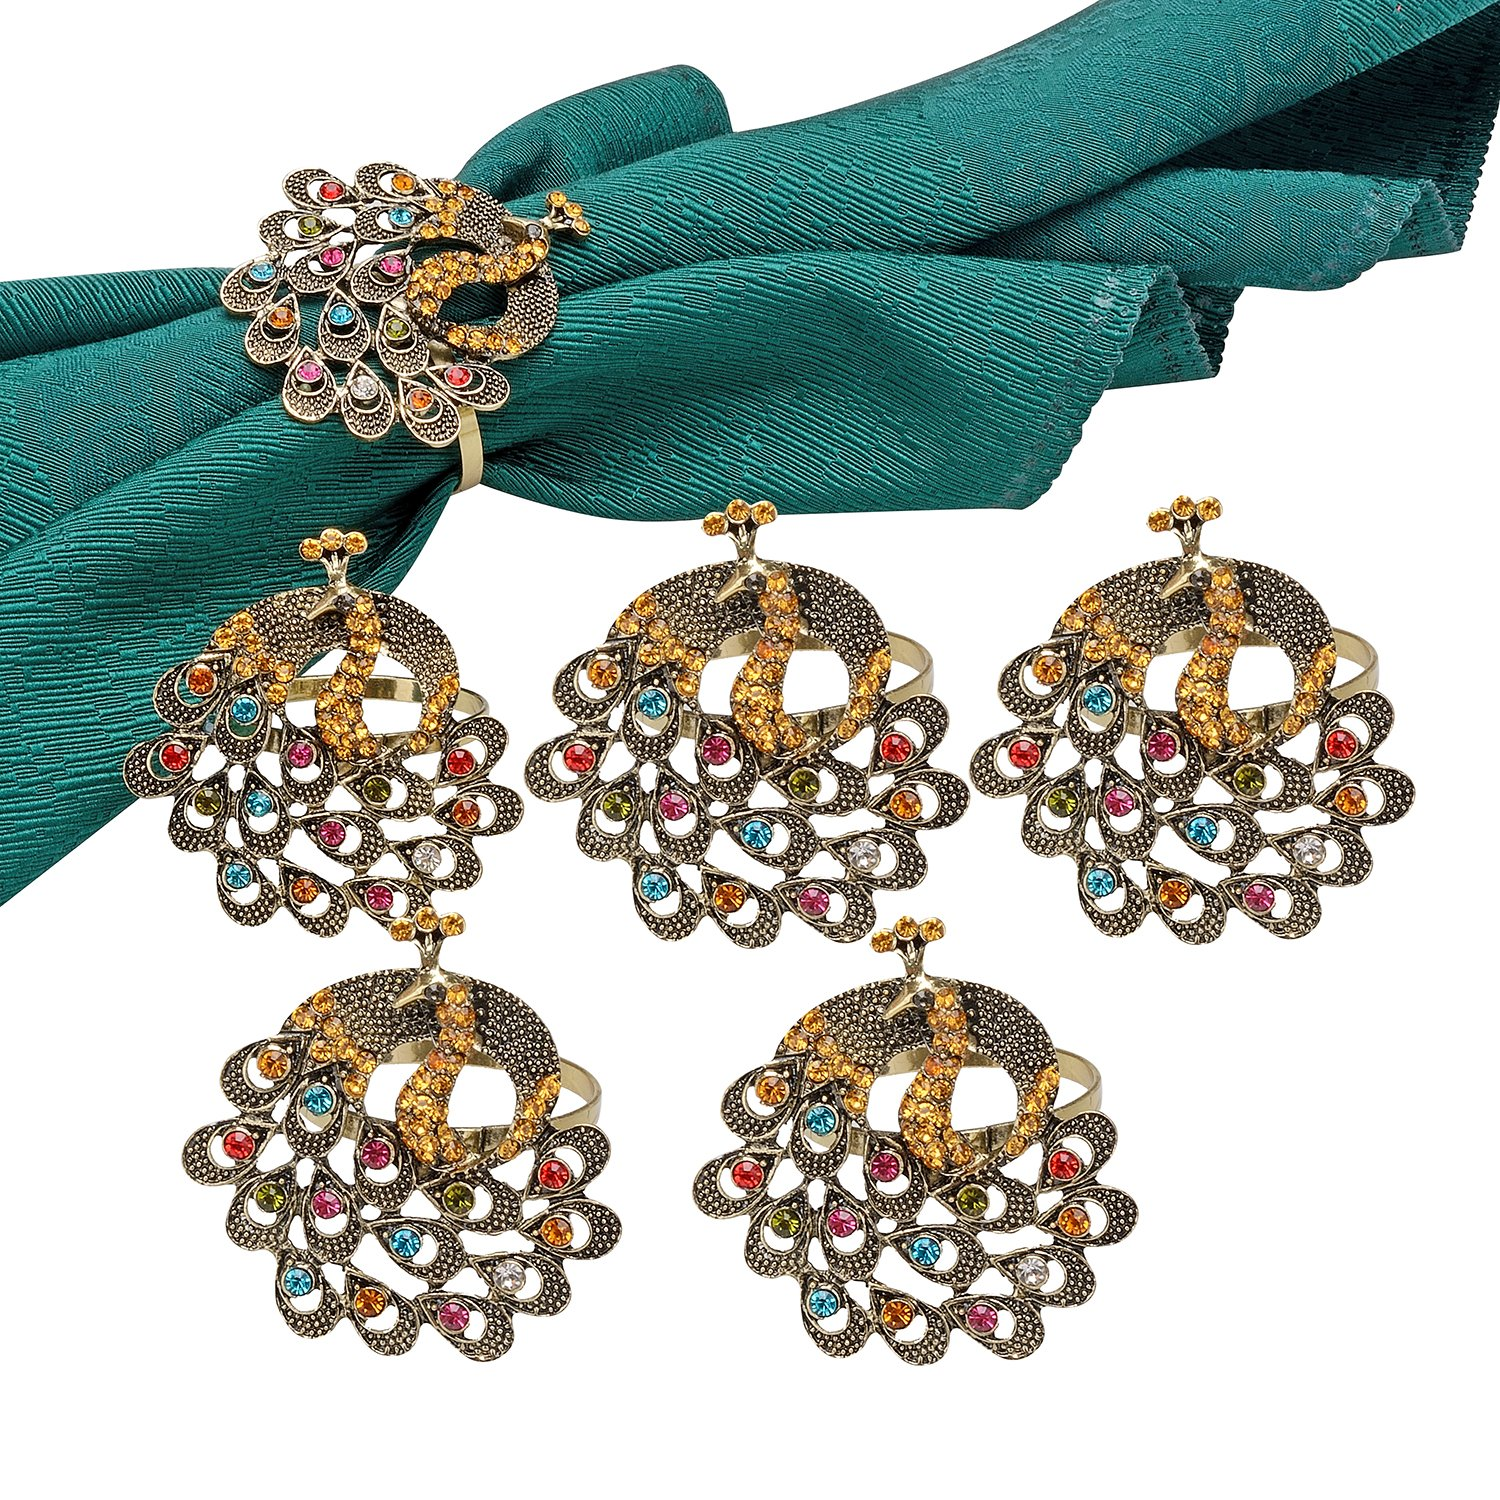 TTOYOUU Set of 6 Alloy Delicate Vintage Peacock Napkin Rings Colorful Diamonds Dinner,Banquet,Parties (Vintage Peacock)